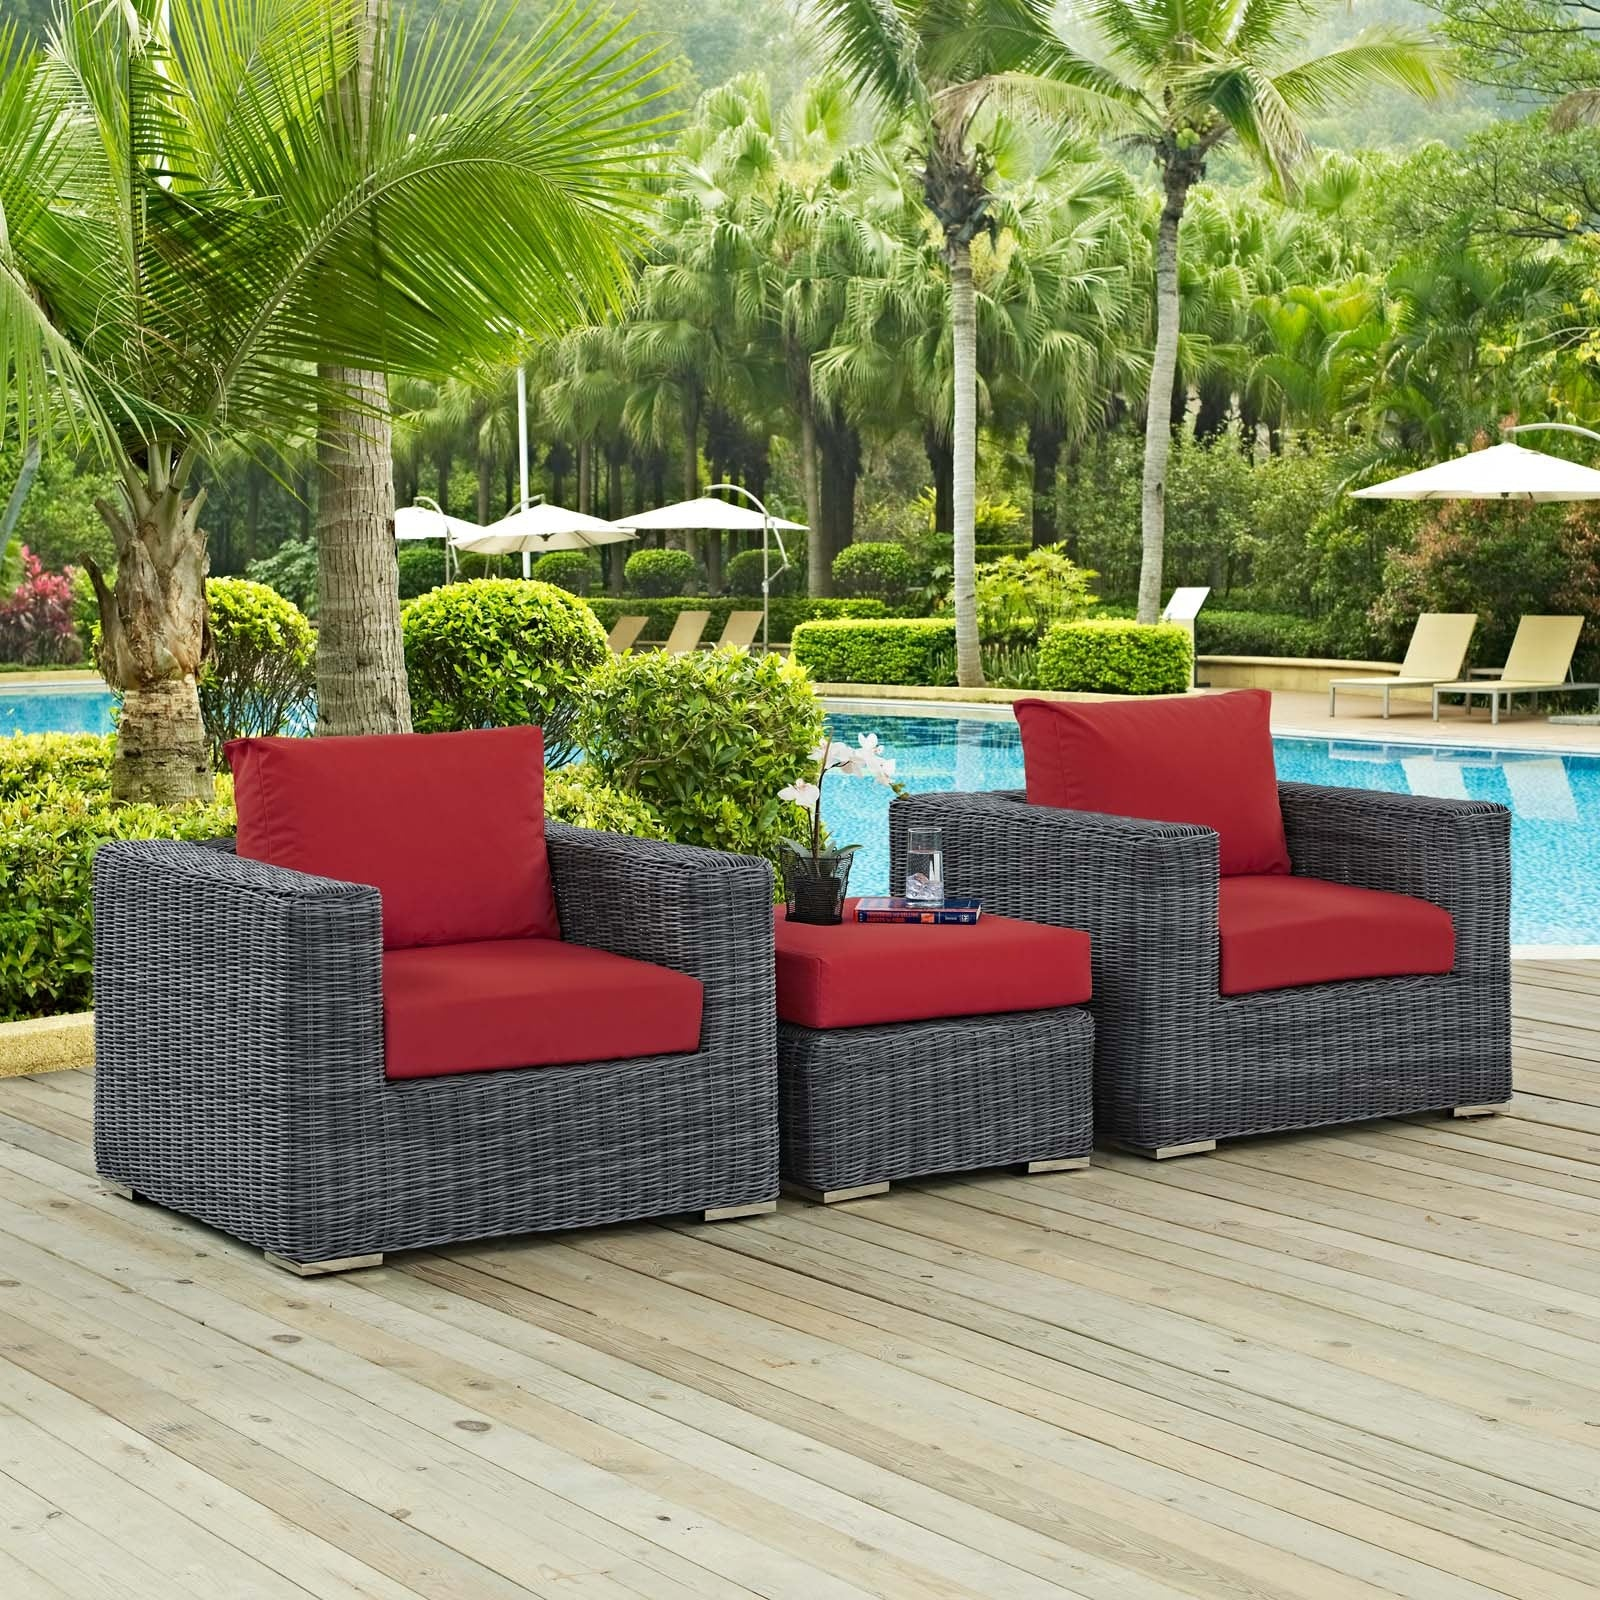 Summon 3 Piece Outdoor Patio Sunbrella® Sectional Set - Canvas Red